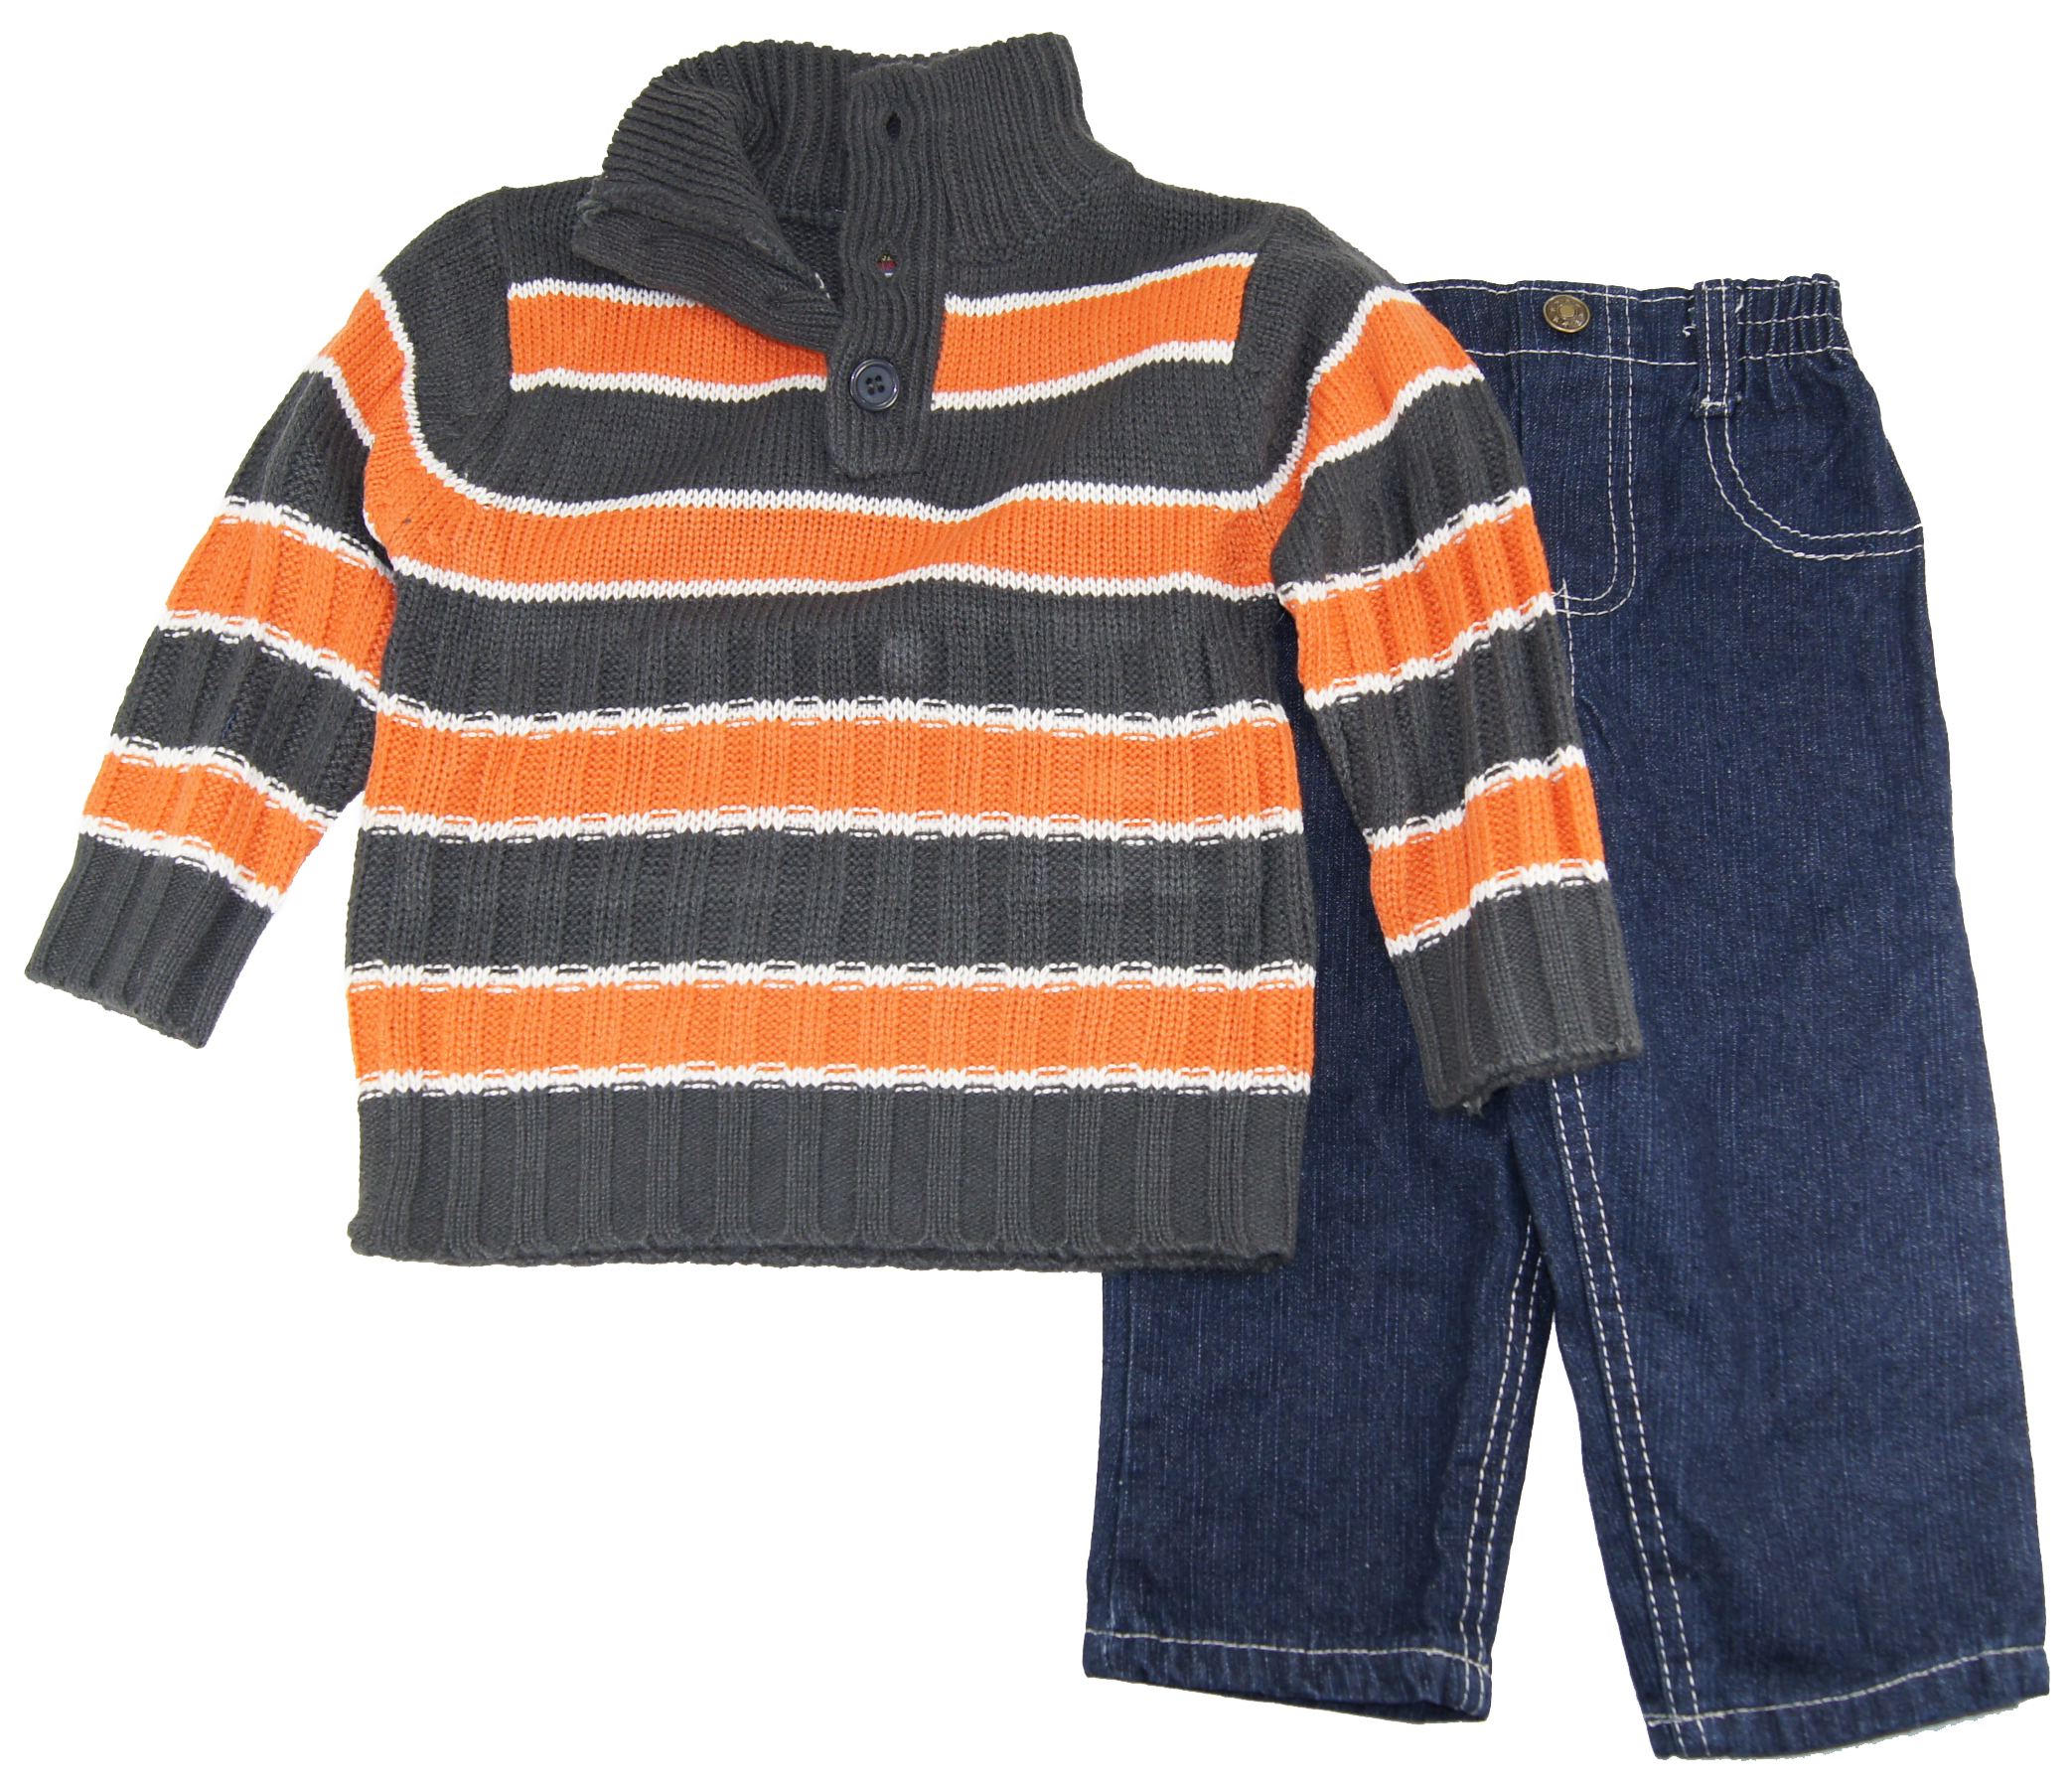 Quad Seven Infant Boys 12-24 Orange Striped Button Up Cardigan Sewater Denim Set at Sears.com